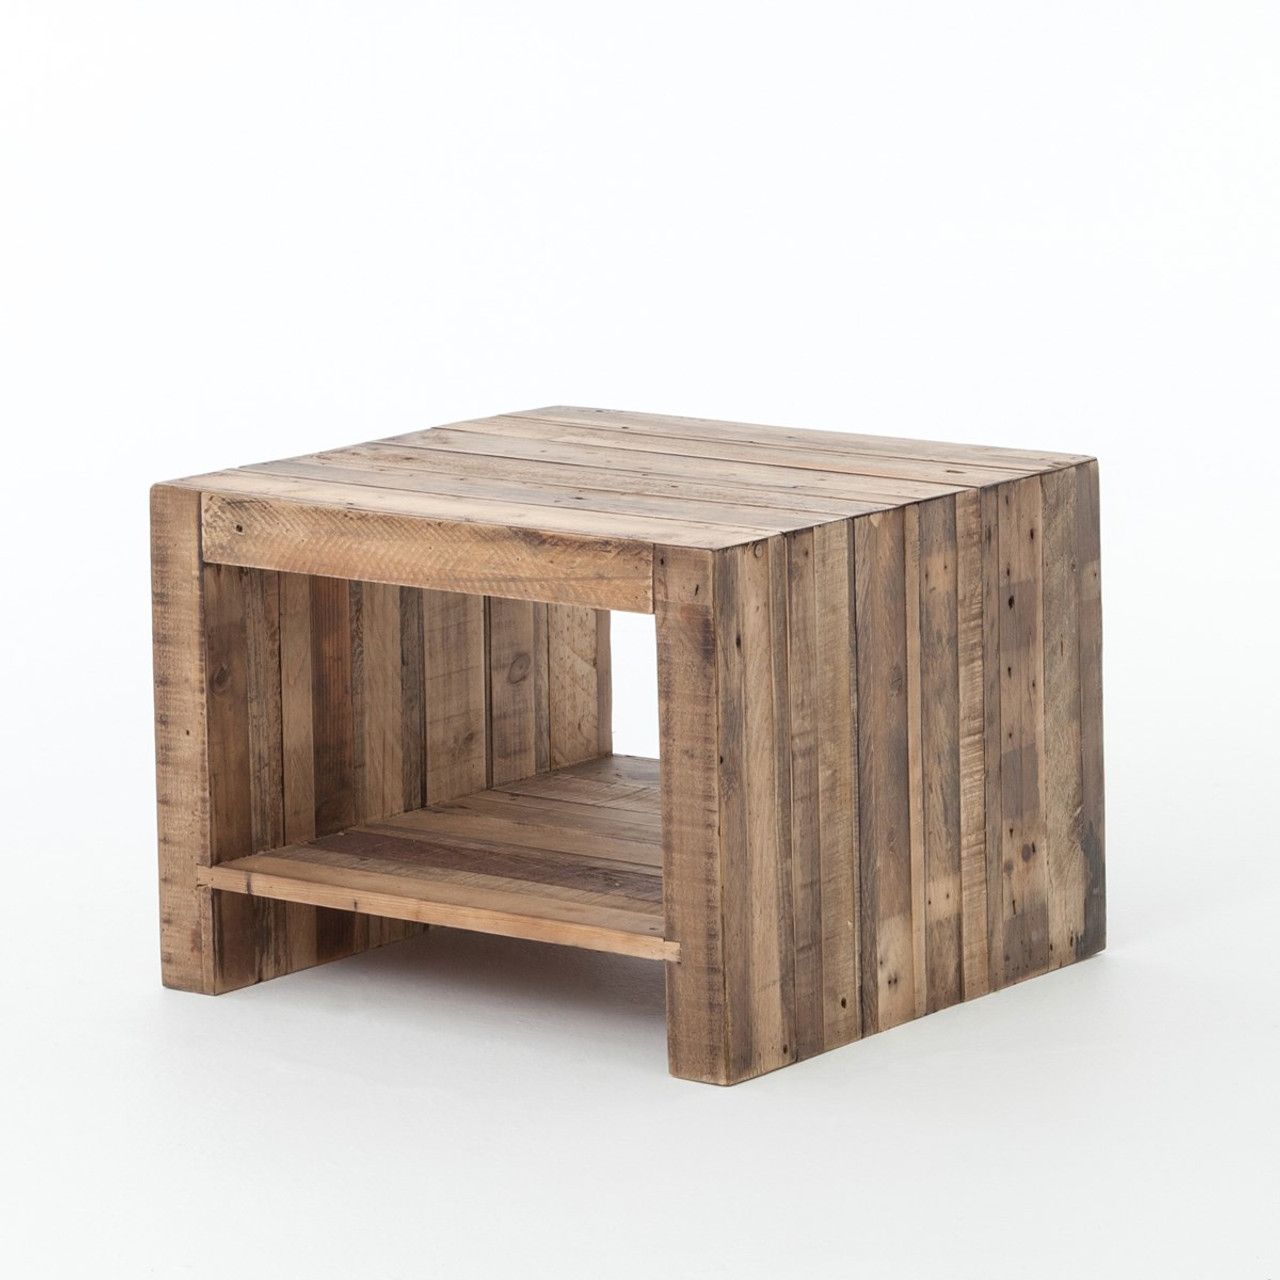 reclaimed wood end table Angora Reclaimed Wood Square End Table | Zin Home reclaimed wood end table